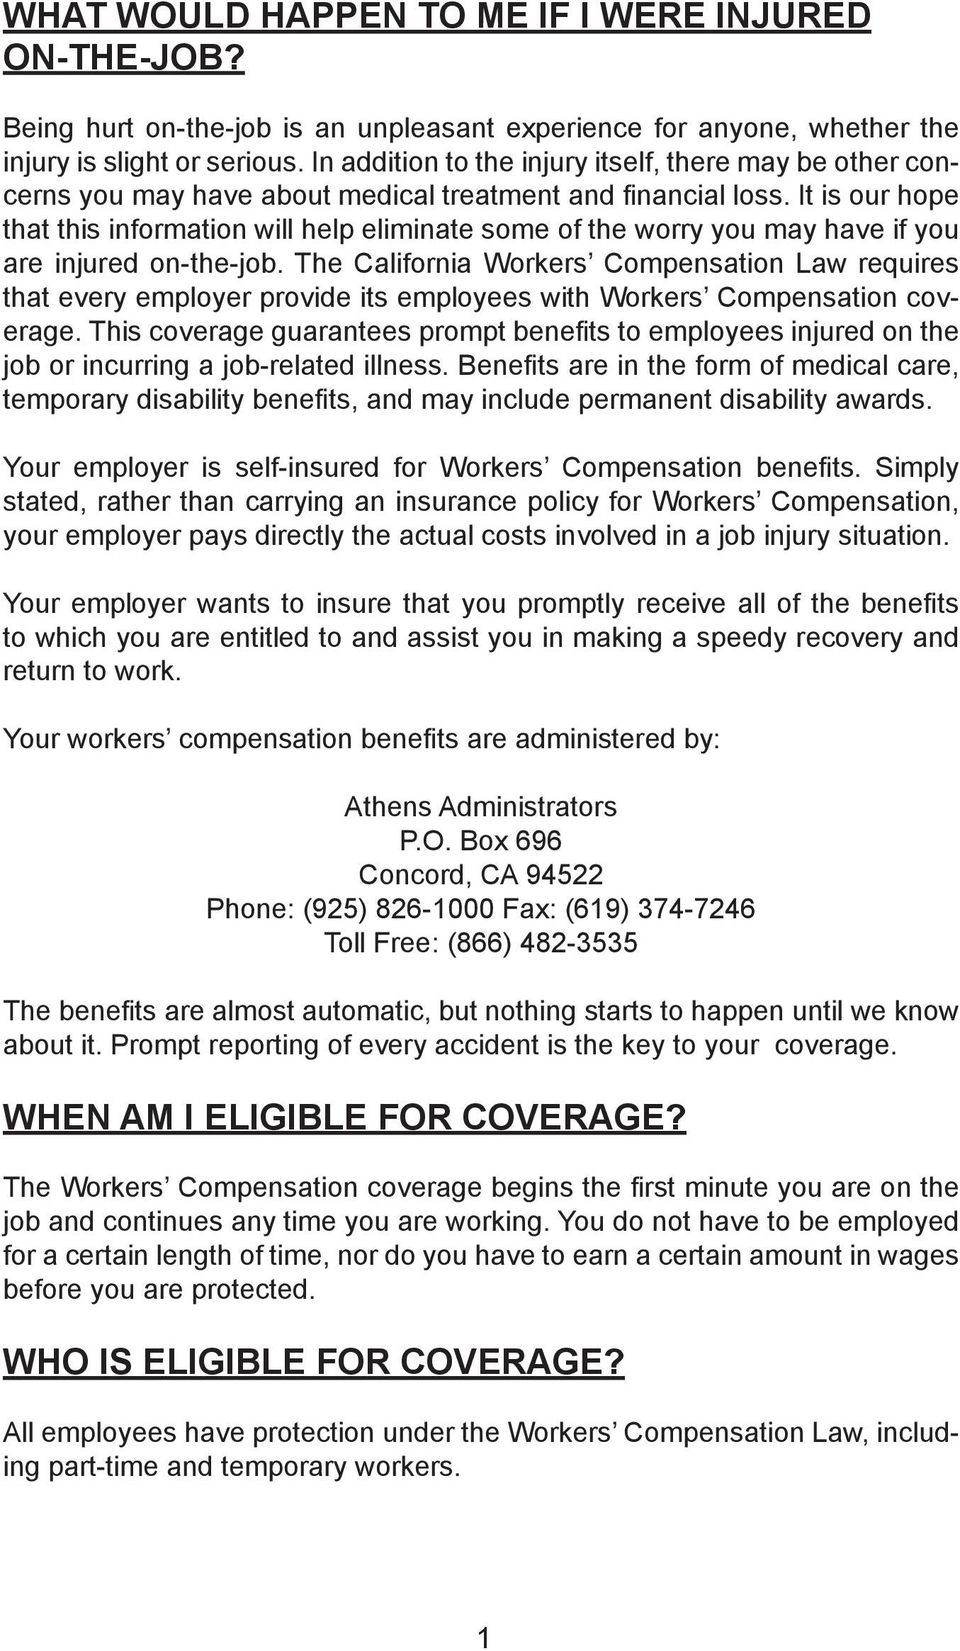 It is our hope that this information will help eliminate some of the worry you may have if you are injured on-the-job.